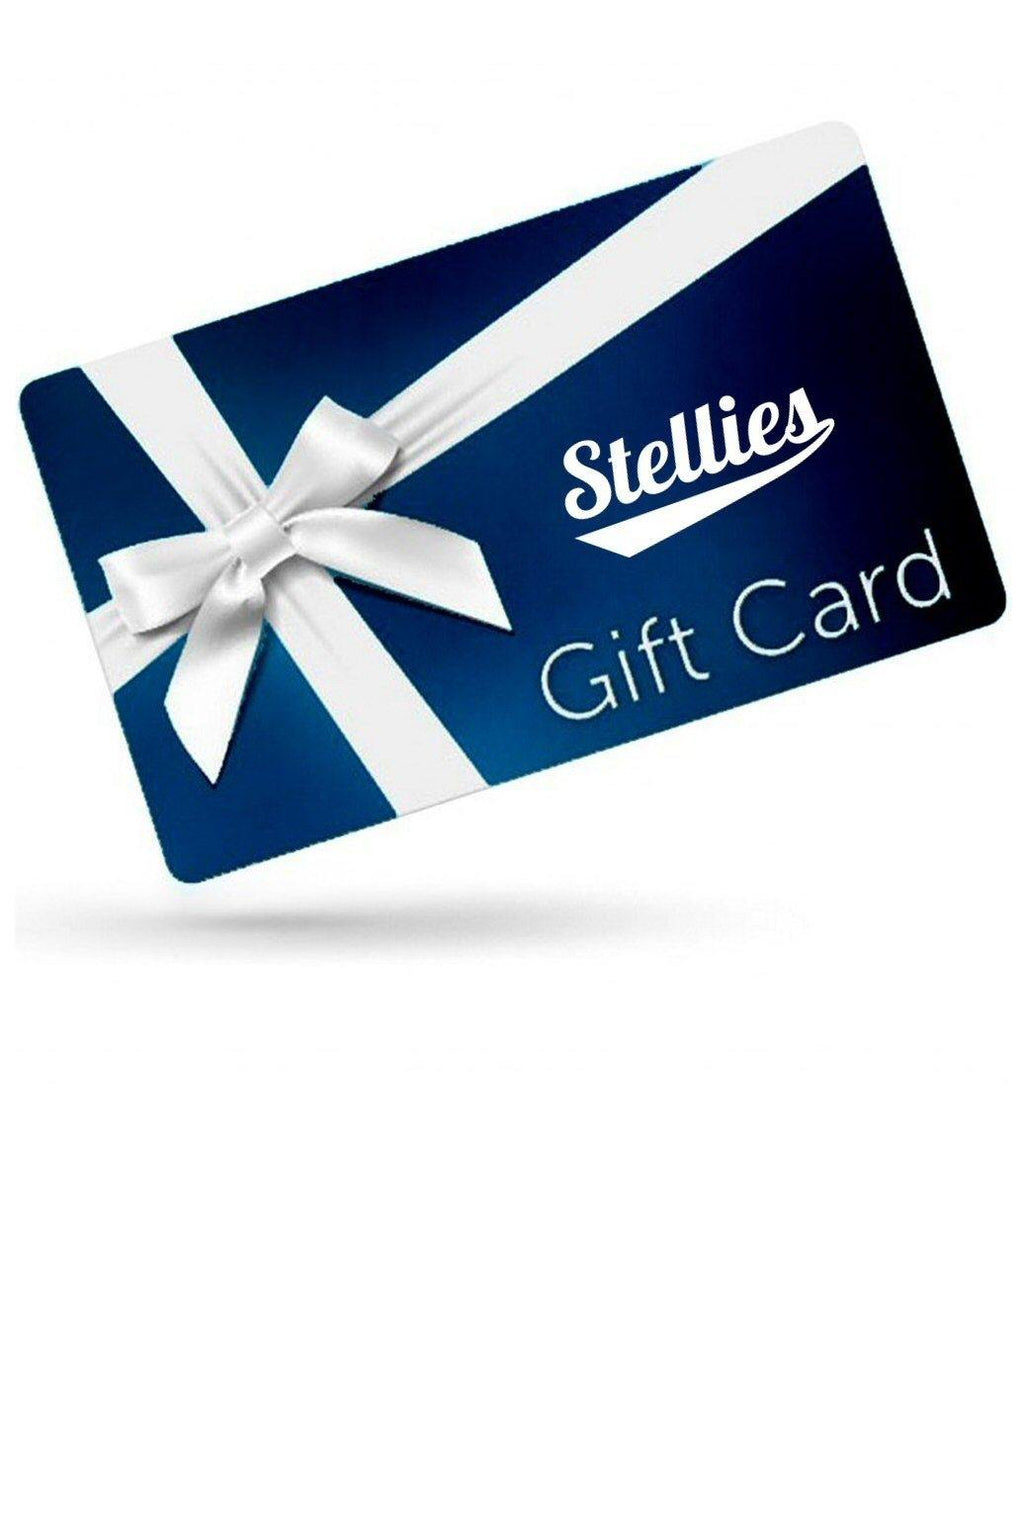 Stellies Gift Card